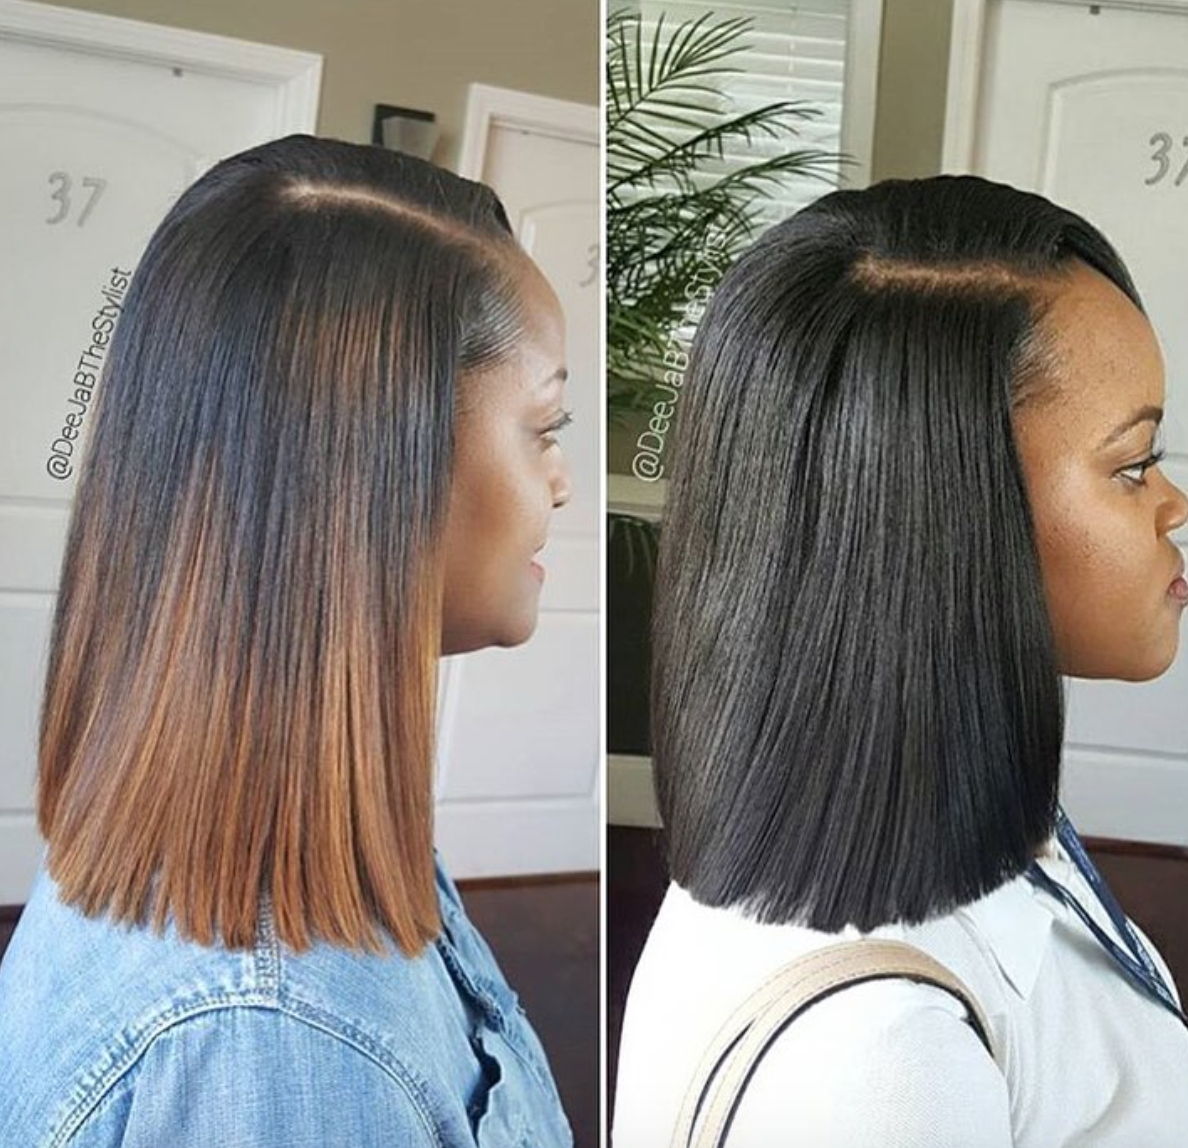 Amazing sew in vs quick weave by @deejabthestylist - Black